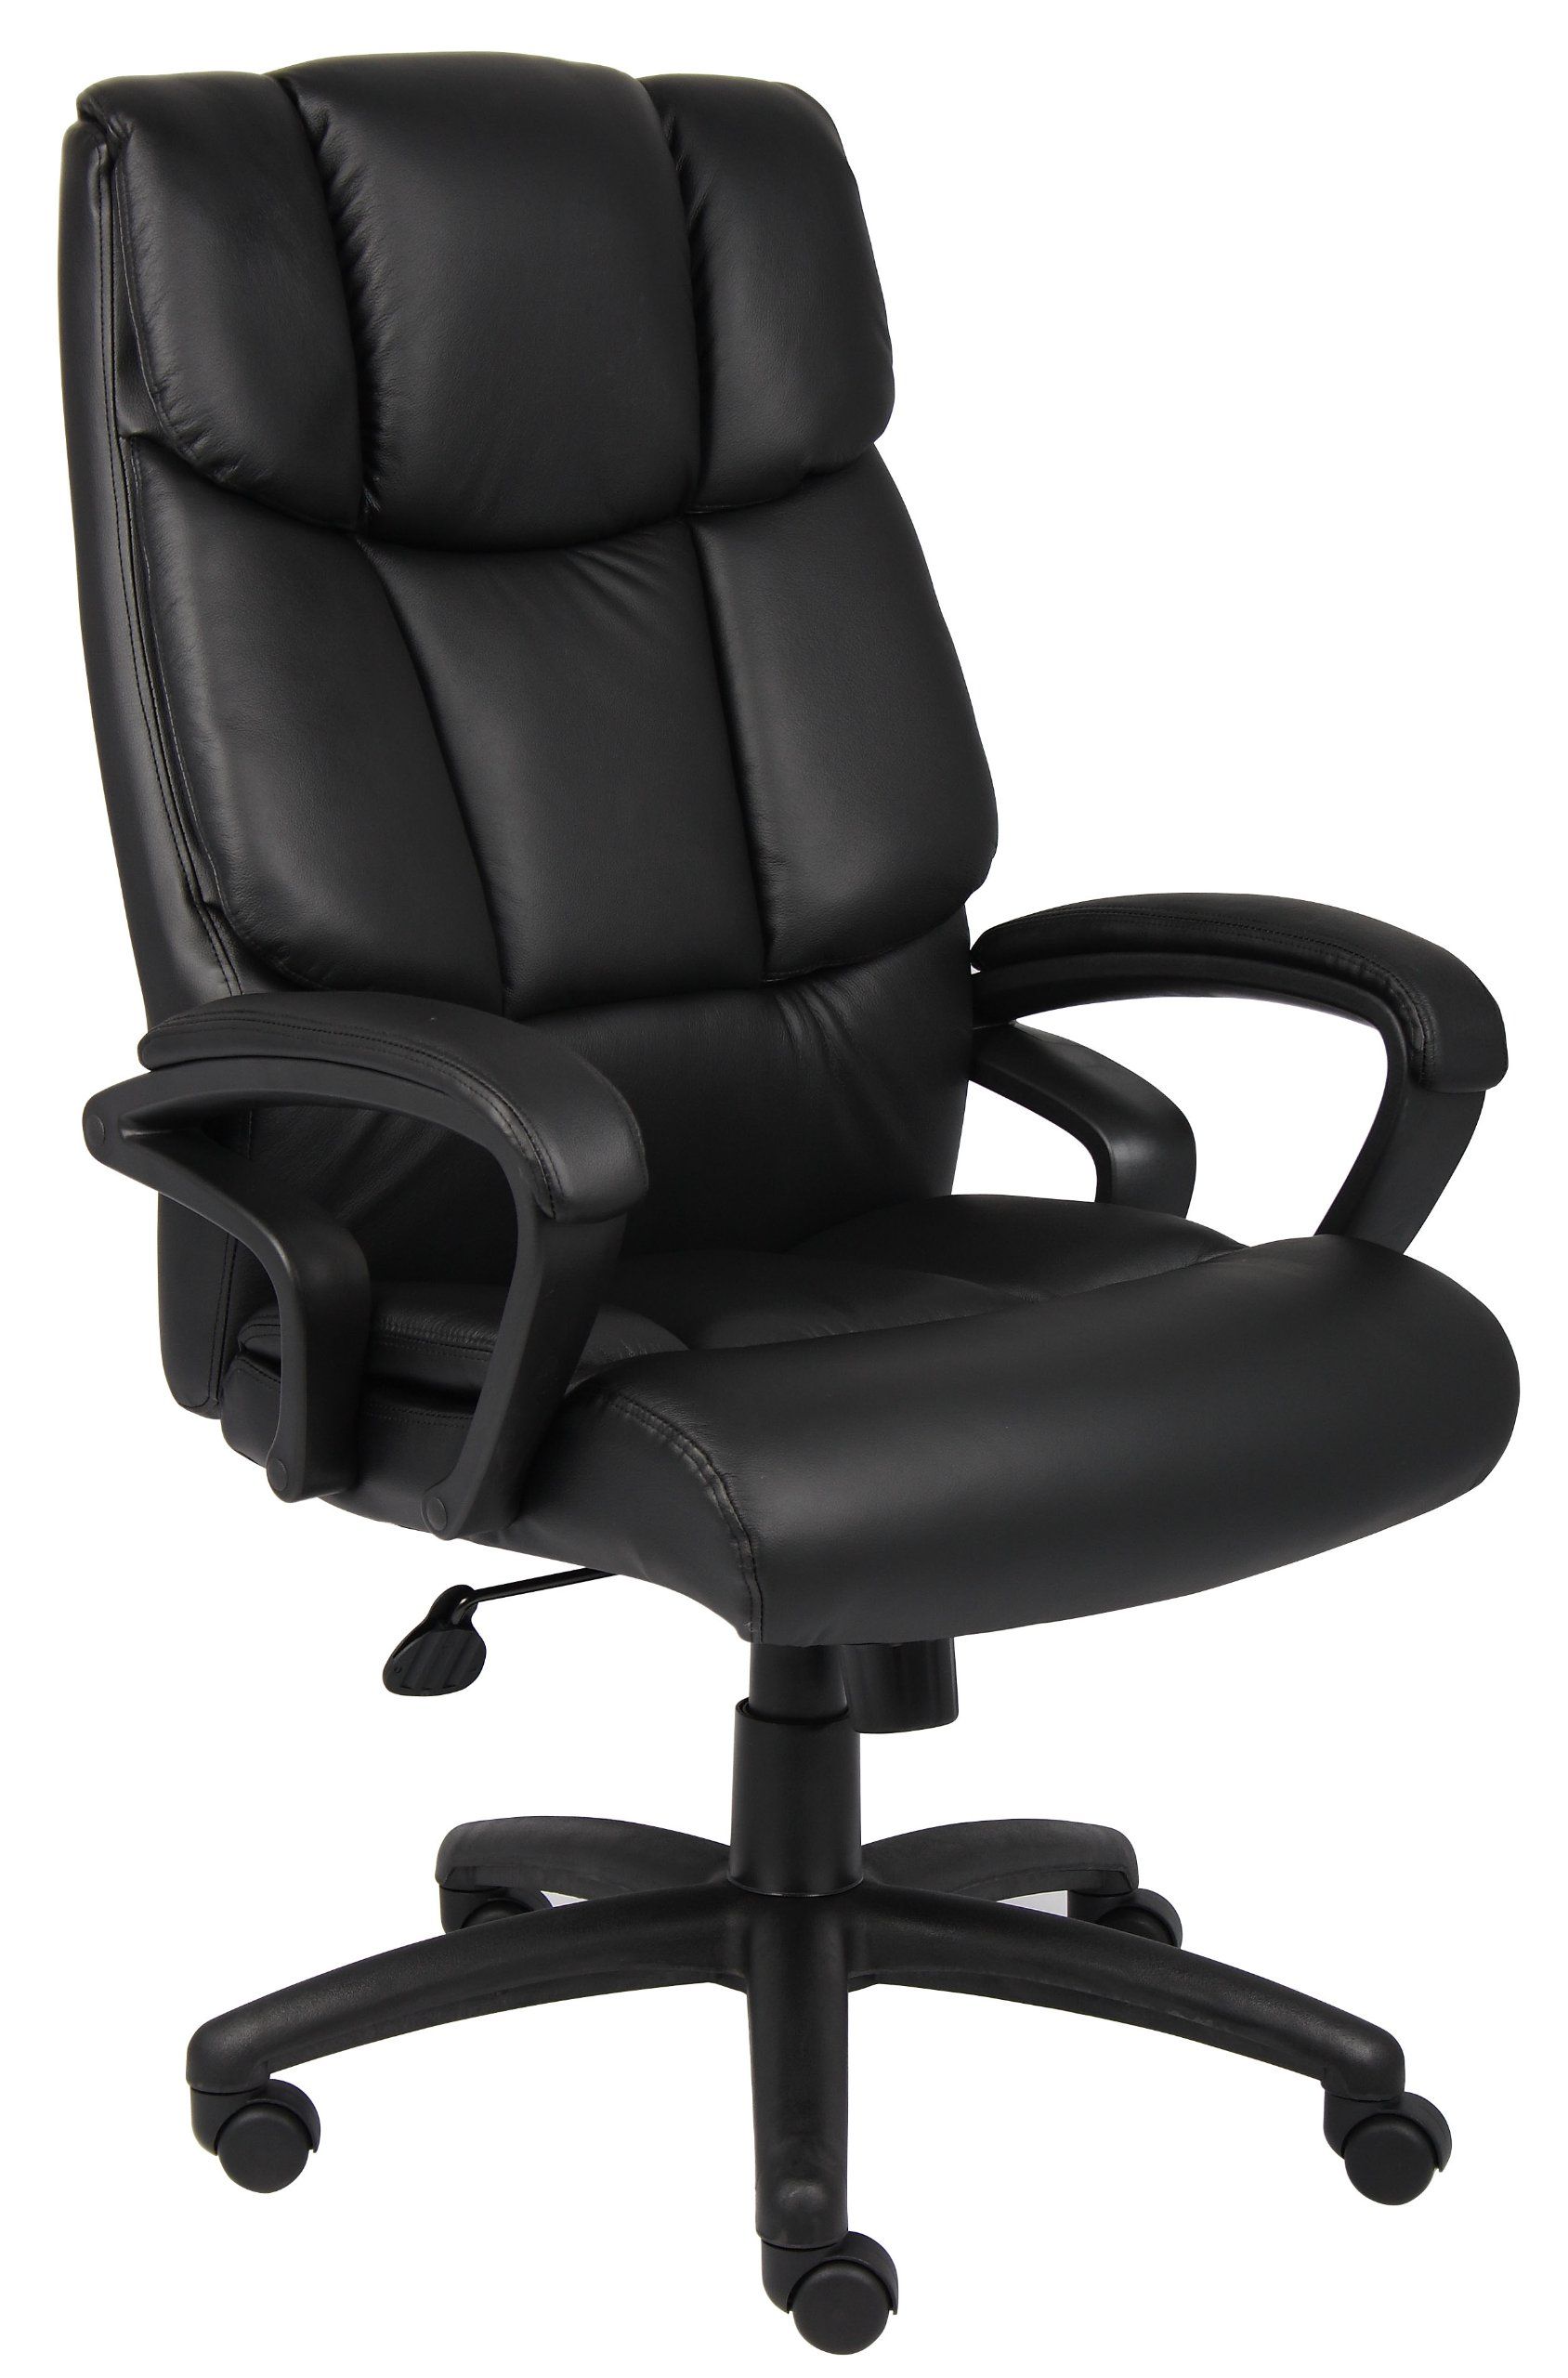 Boss Office Products B8701 High Back No Tools Required Top Grain Leather Chair in Black by Boss Office Products